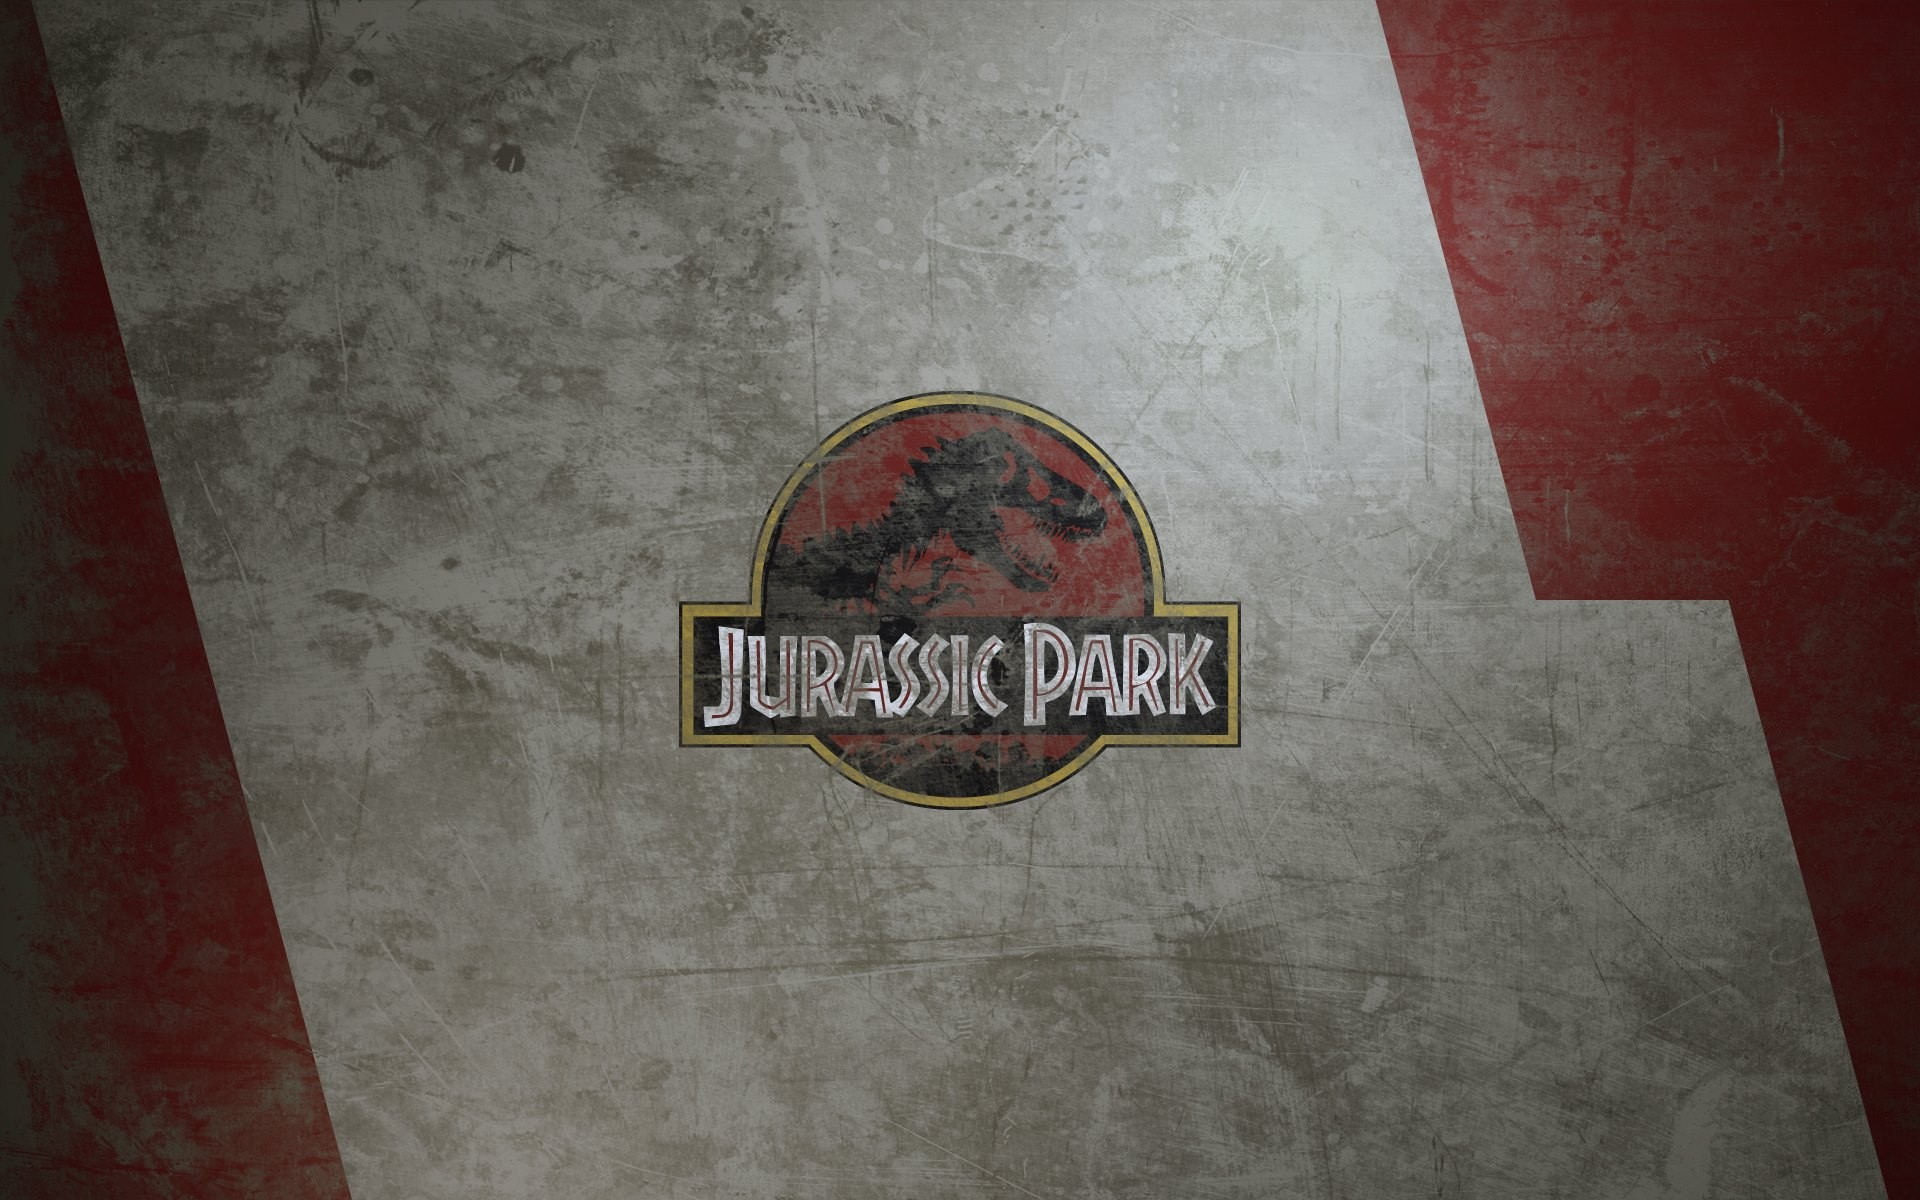 Jurassic Park 3d Wallpaper Hd Jurassic Park Digital Art Texture Metal Movies